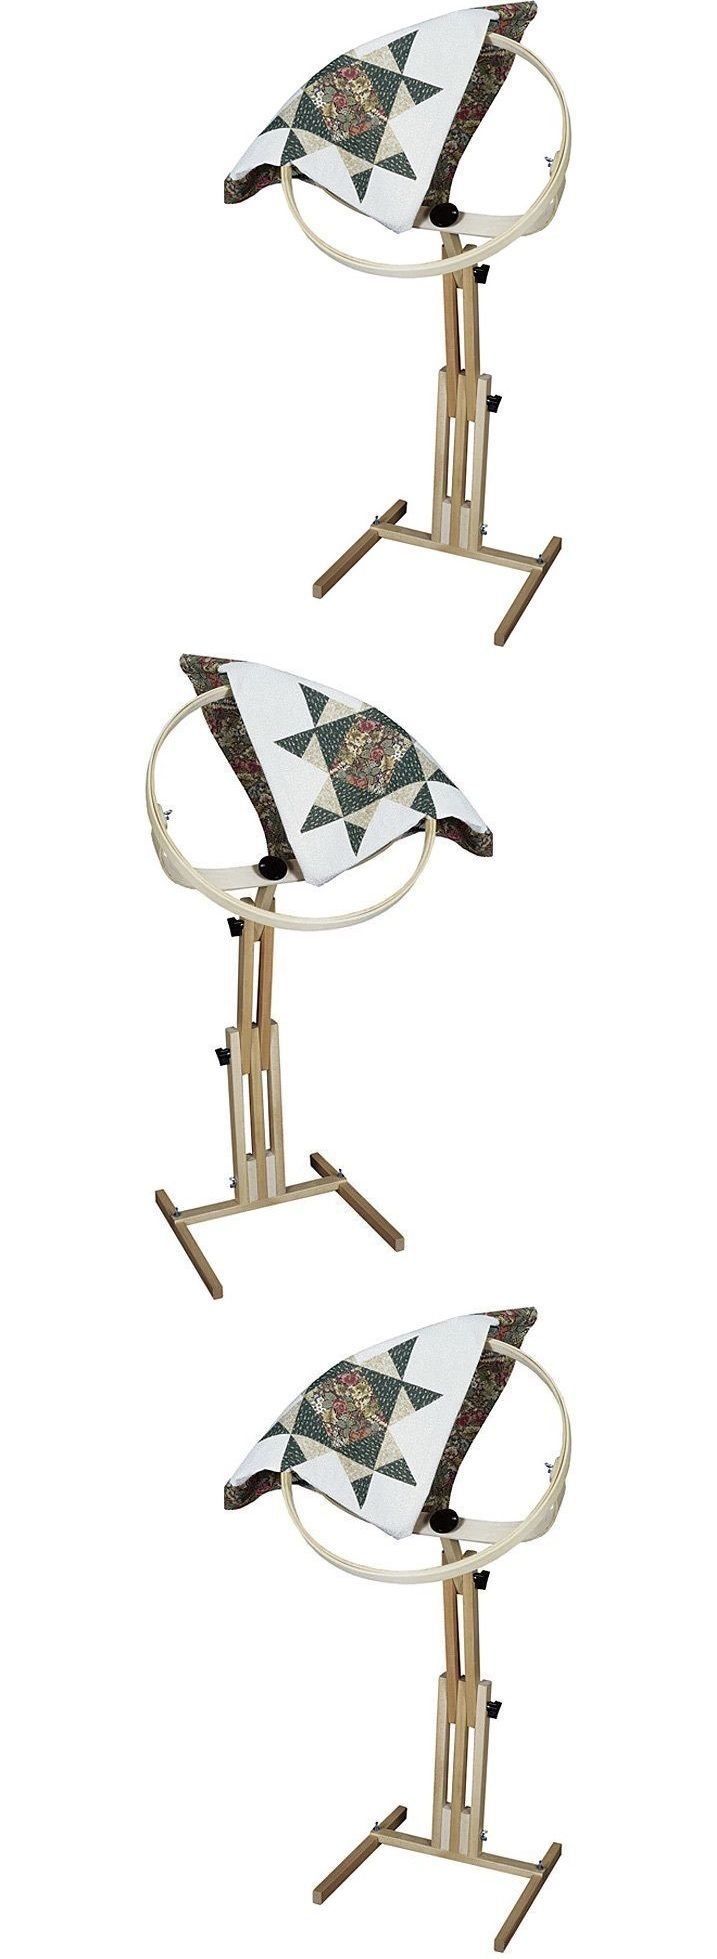 Quilting Tools and Equipment 19161: Quilting Frames Hand Quilt ... : quilt hoop floor stand - Adamdwight.com